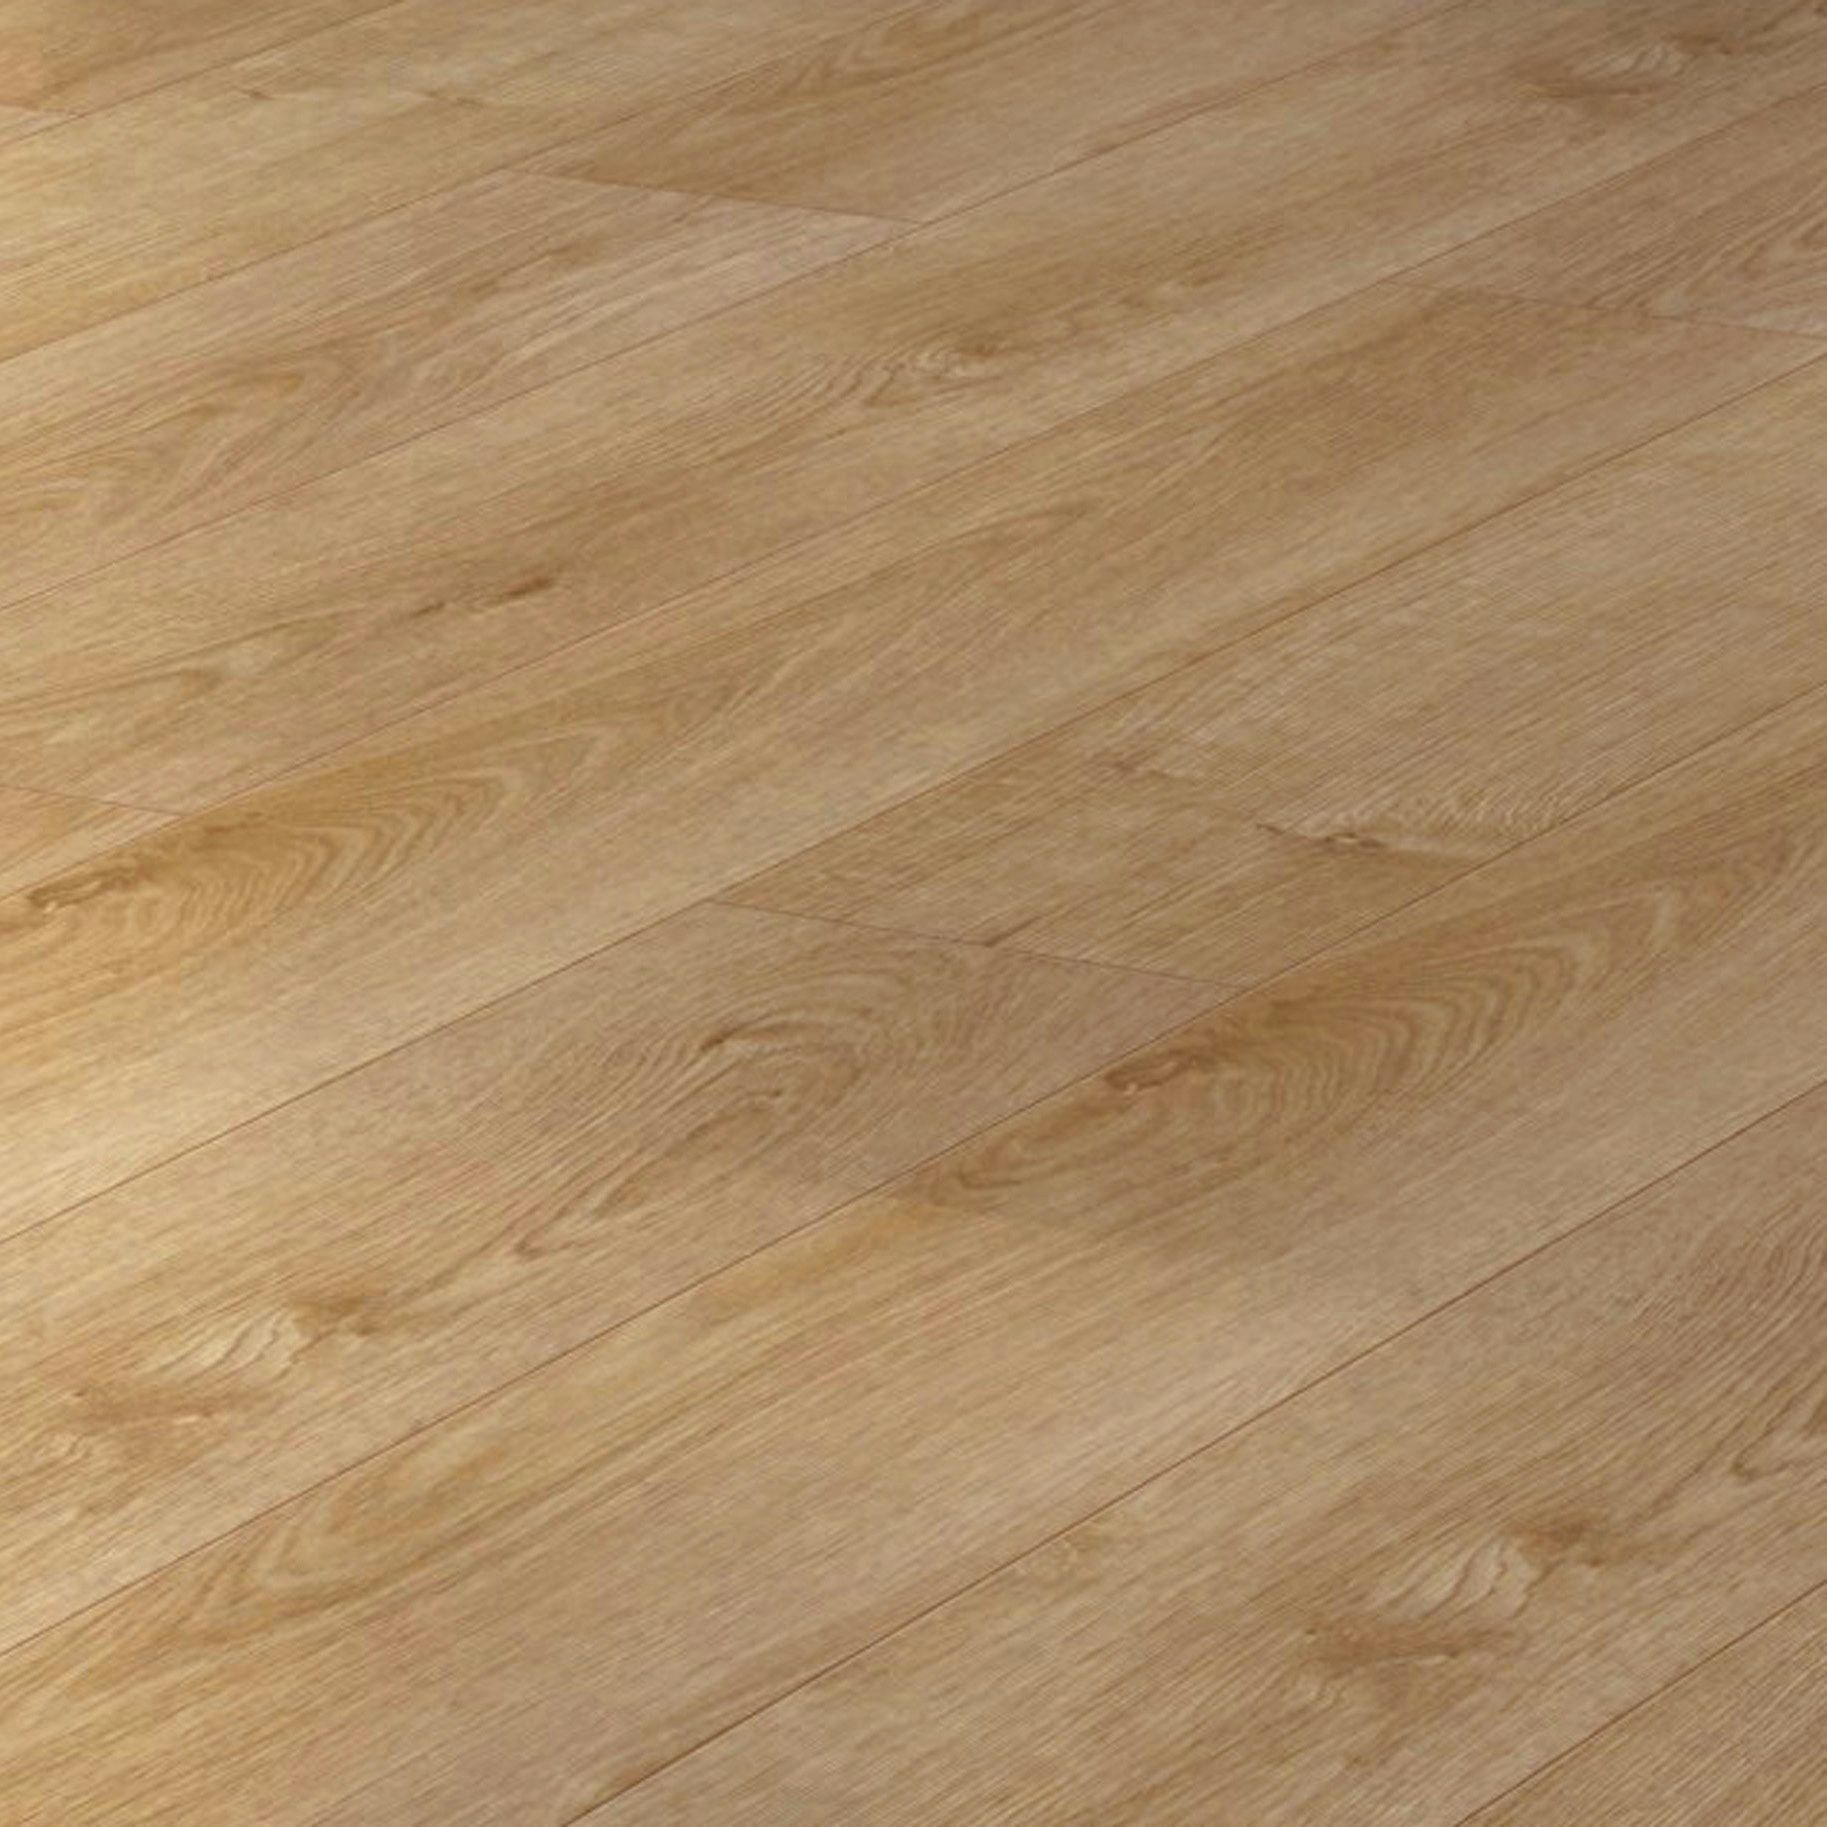 Overture Natural Milano Oak Effect Laminate Flooring 1 25 M² Sample Departments Diy At B Q